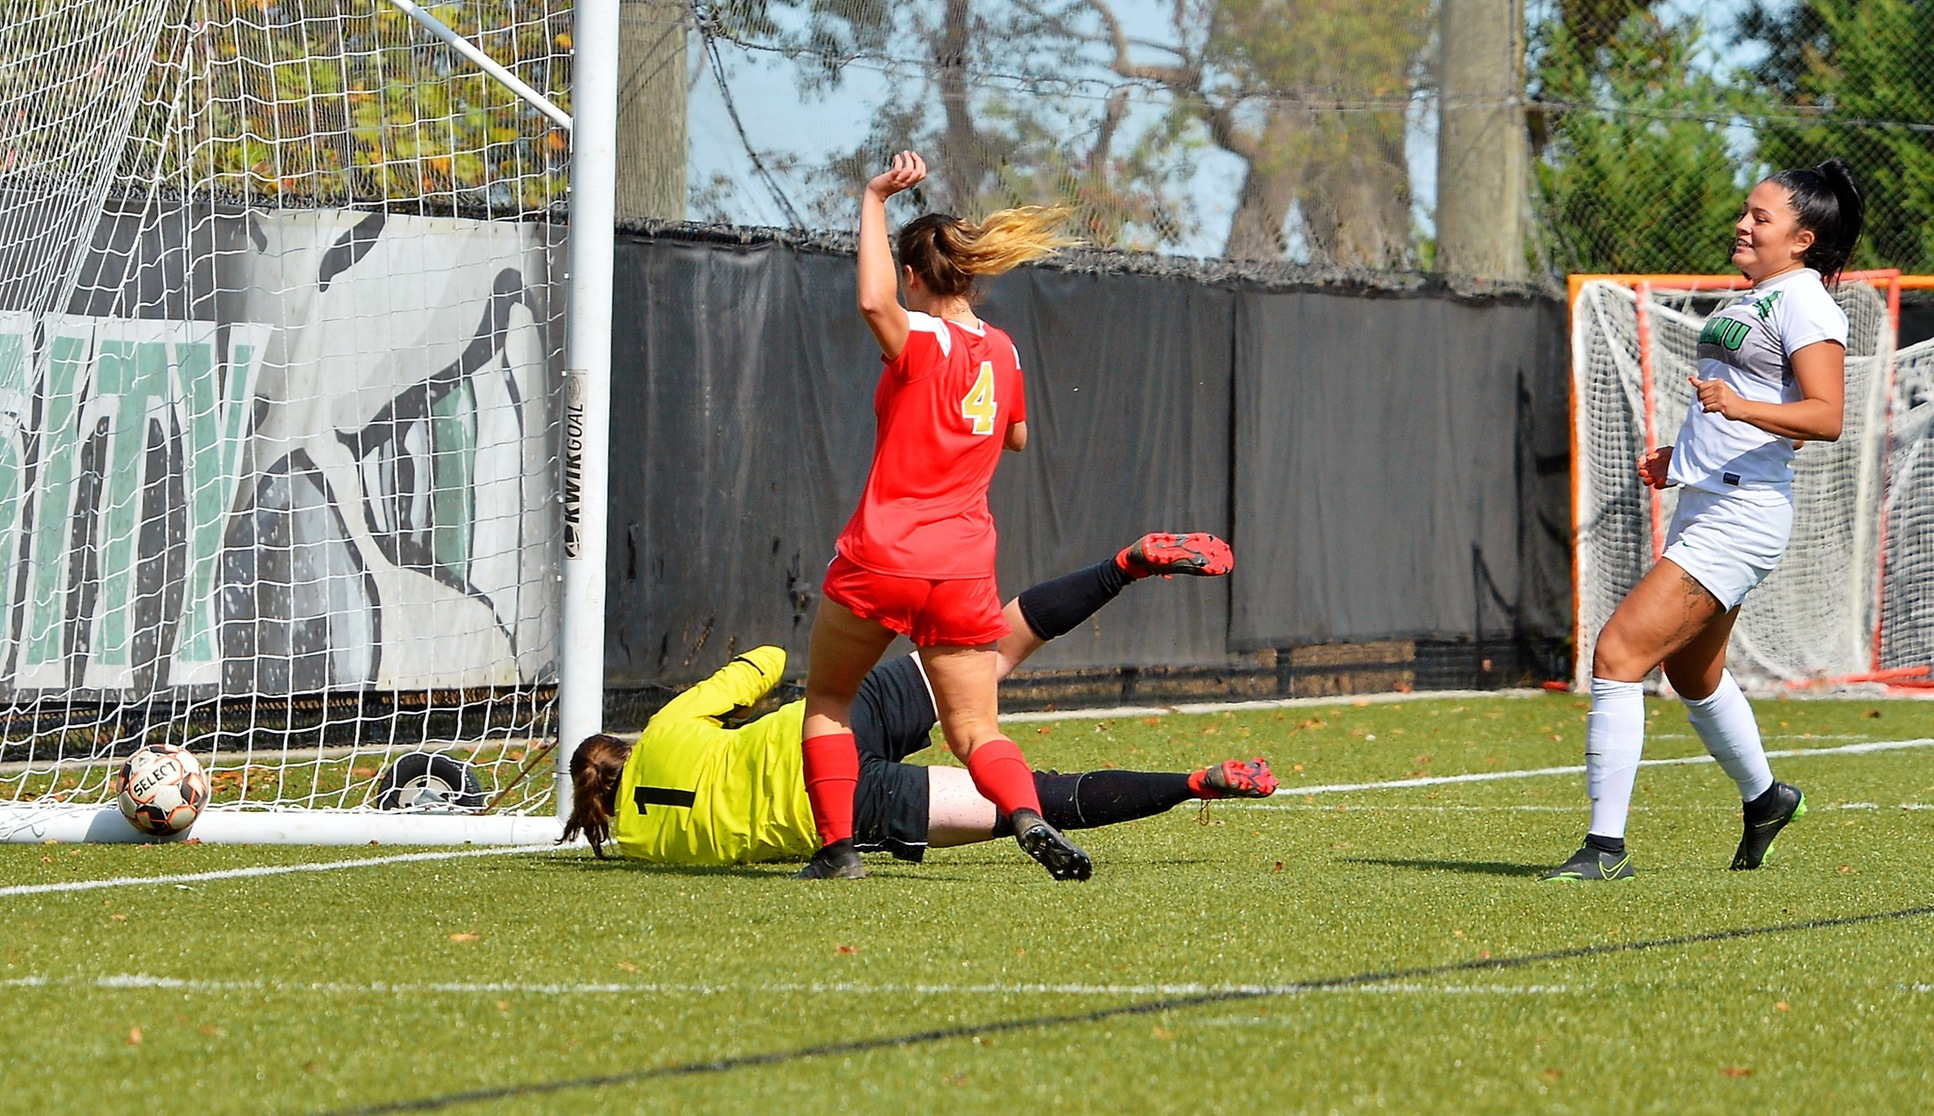 Photo of Jessica Unsihuay scoring against Caldwell. Copyright 2019; Wilmington University. All rights reserved. Photo by James Jones. October 19, 2019 vs. Caldwell.